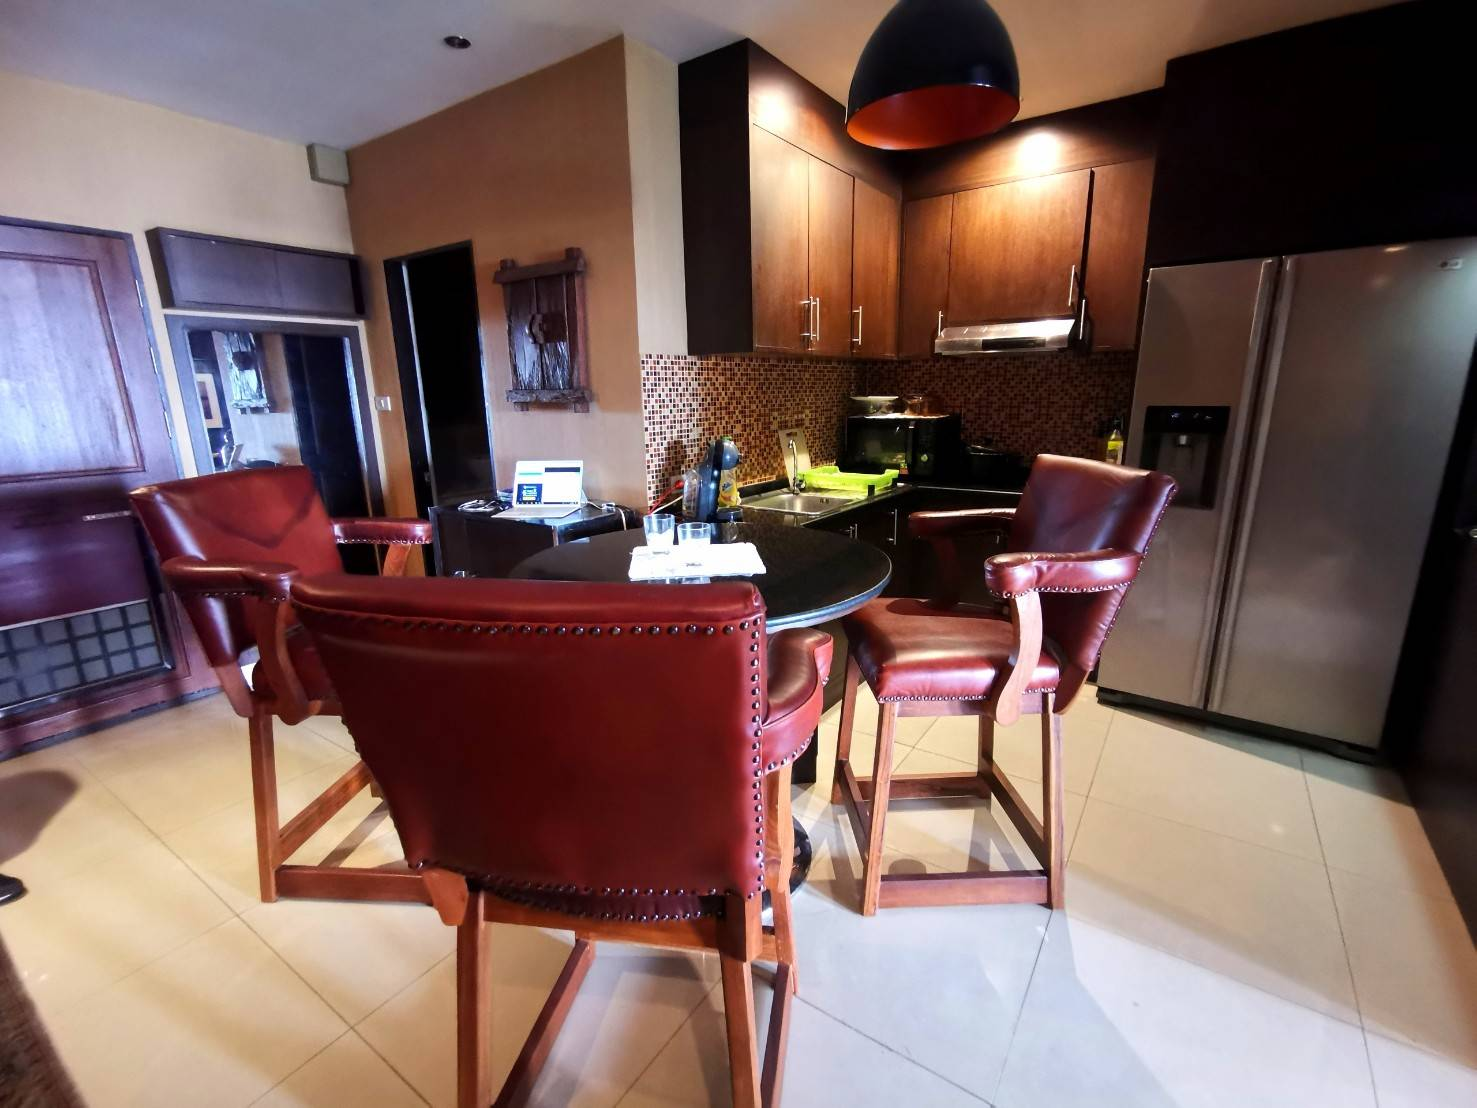 One Bedroom Condo For Rent At The Trio